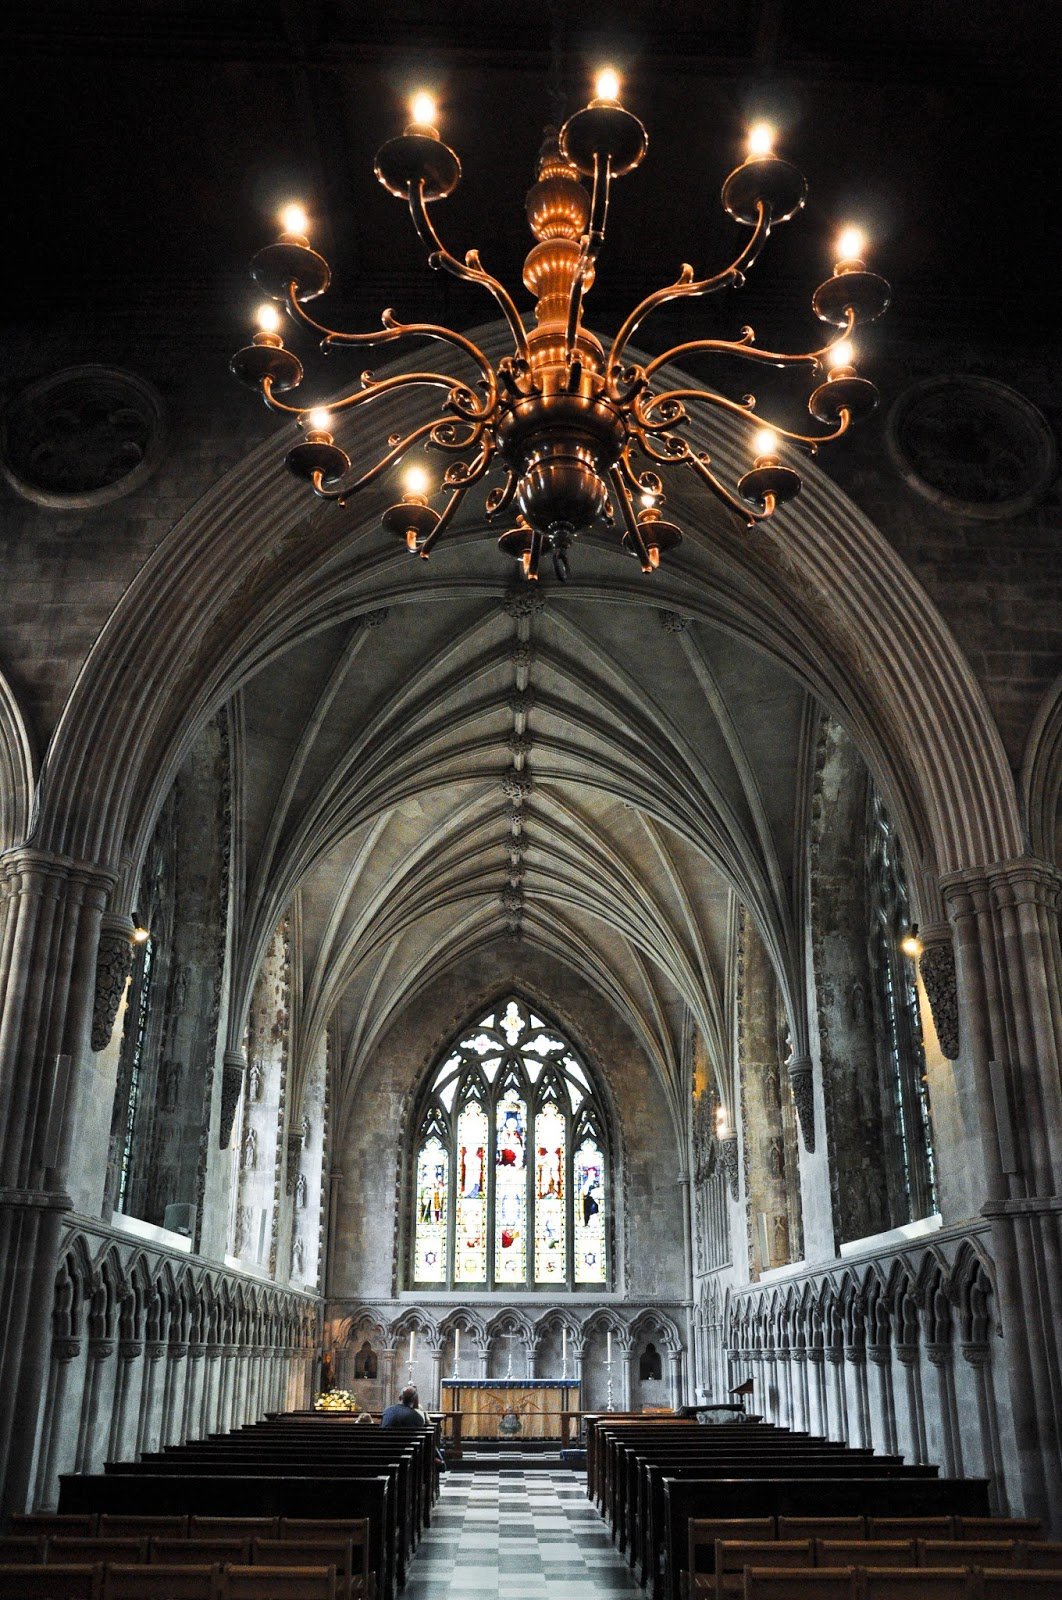 Inside St. Albans Cathedral, St. Albans, Herts, England